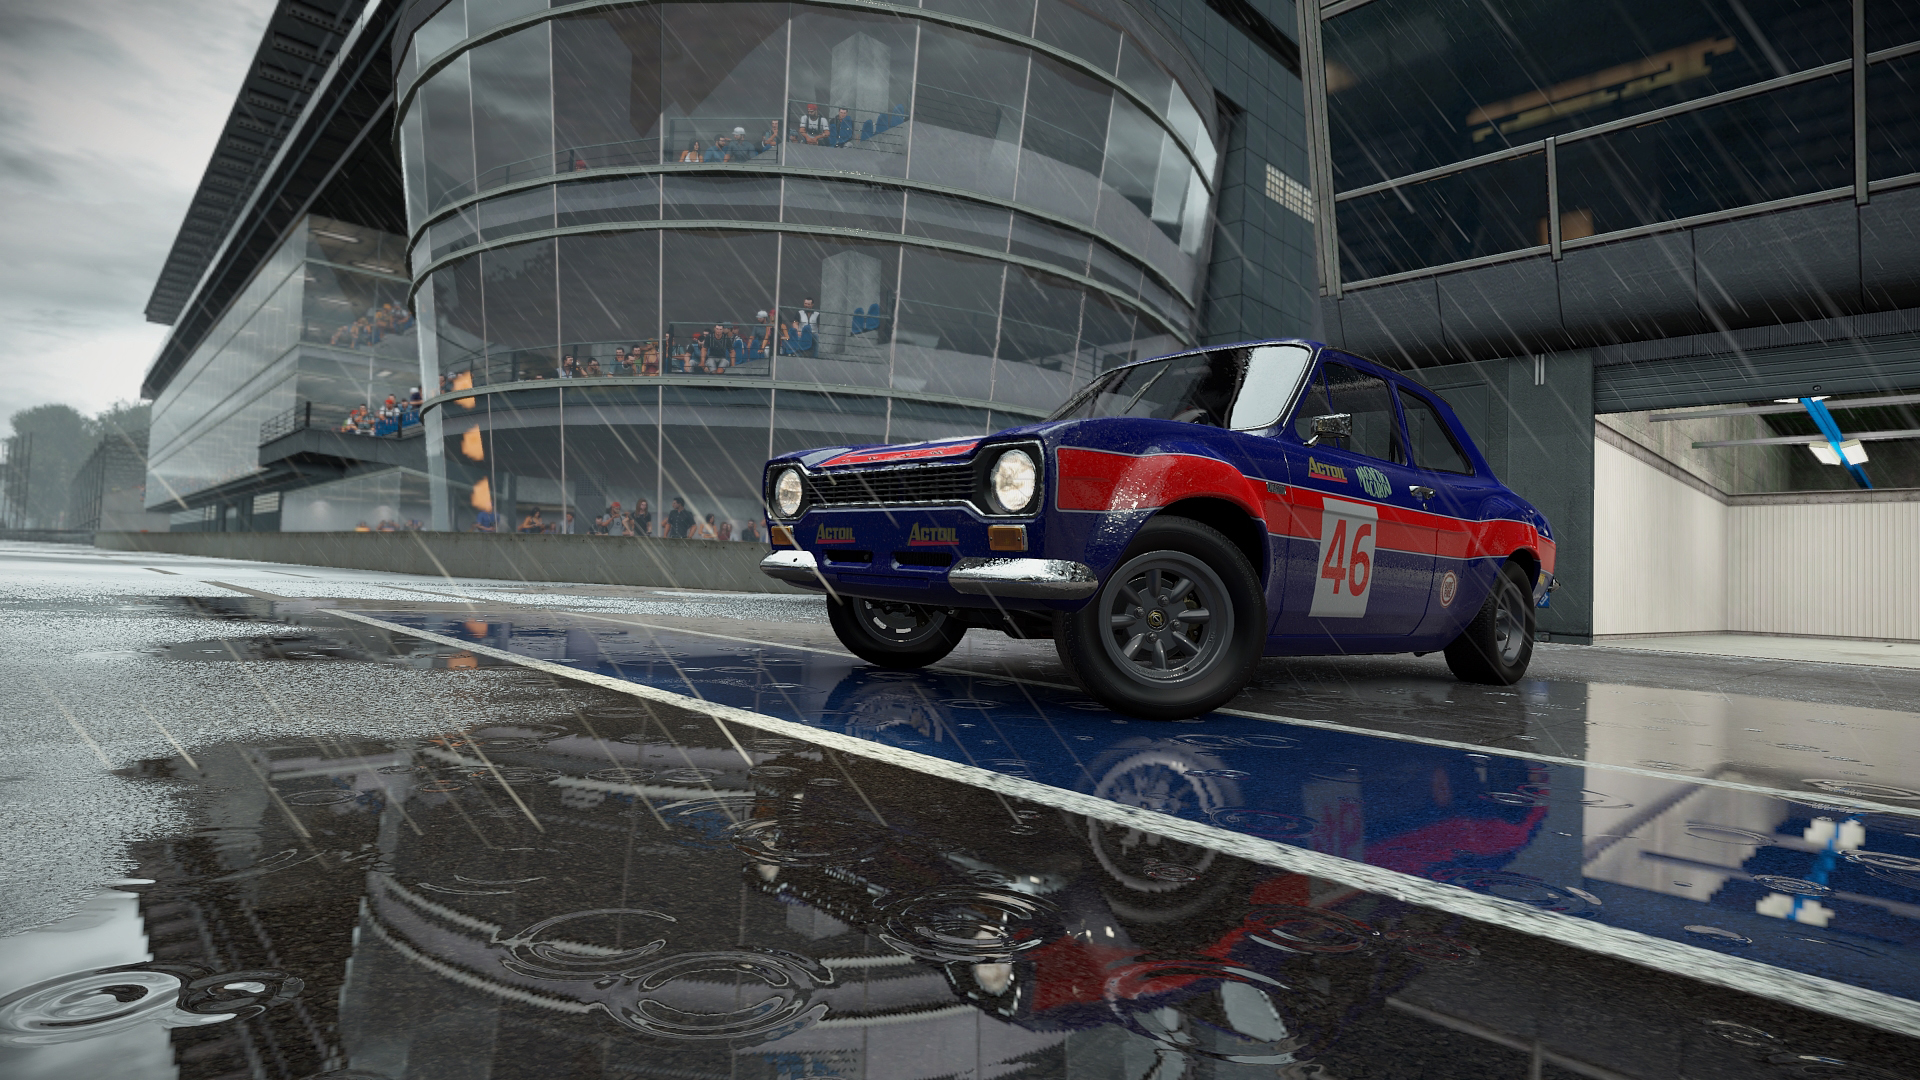 Project Cars delayed to March 2015 (update)